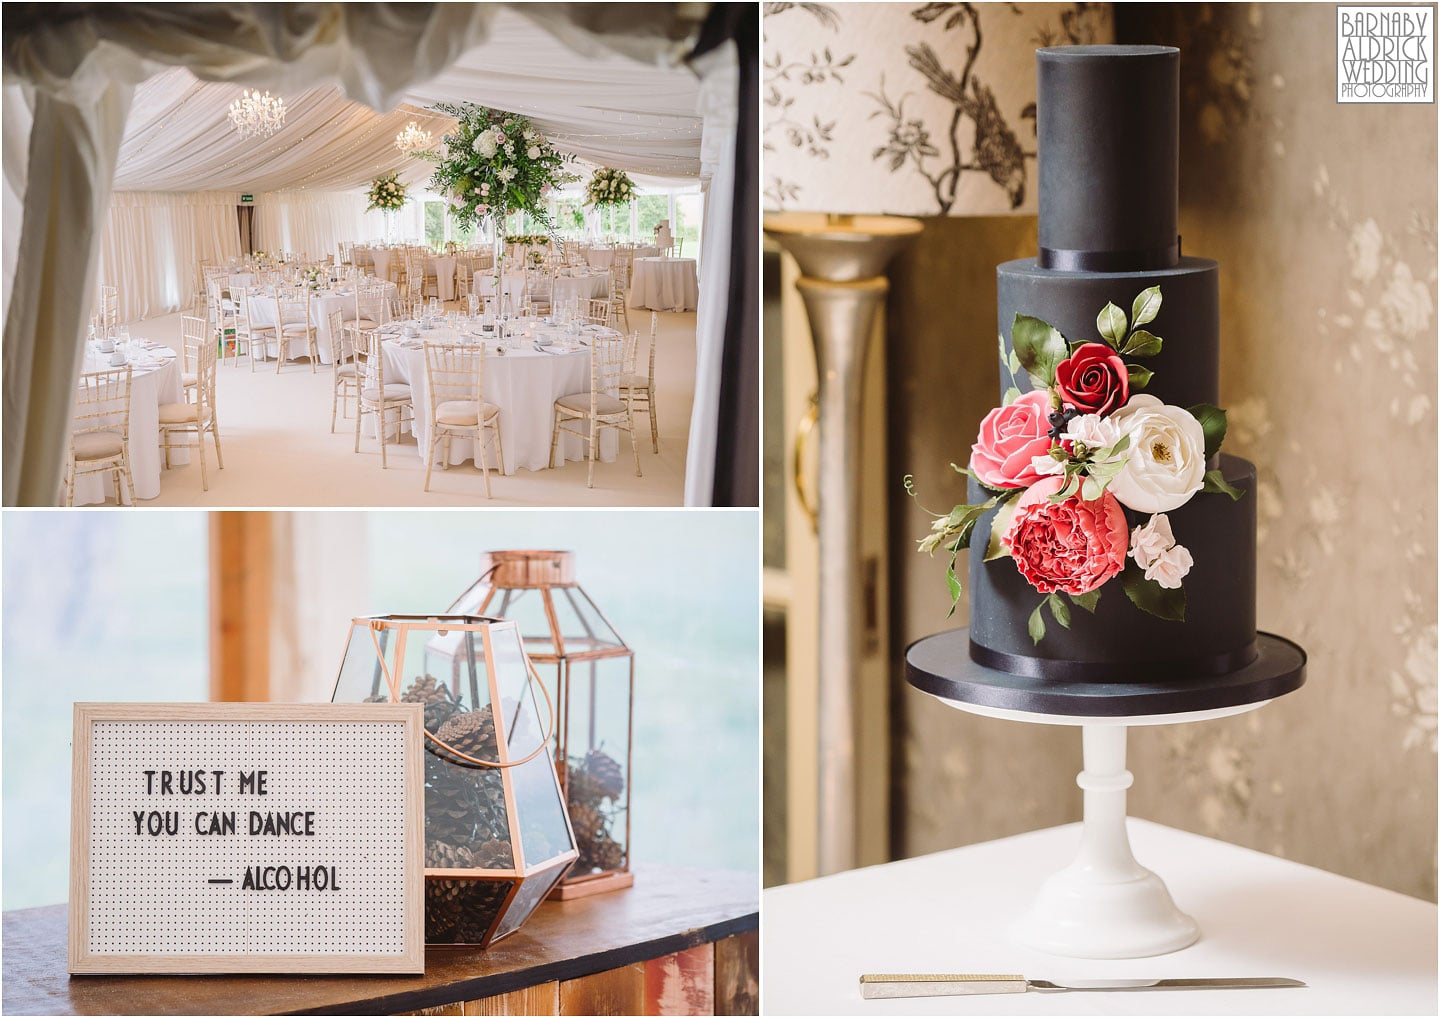 Amazing wedding cake, signs and marquee dressing